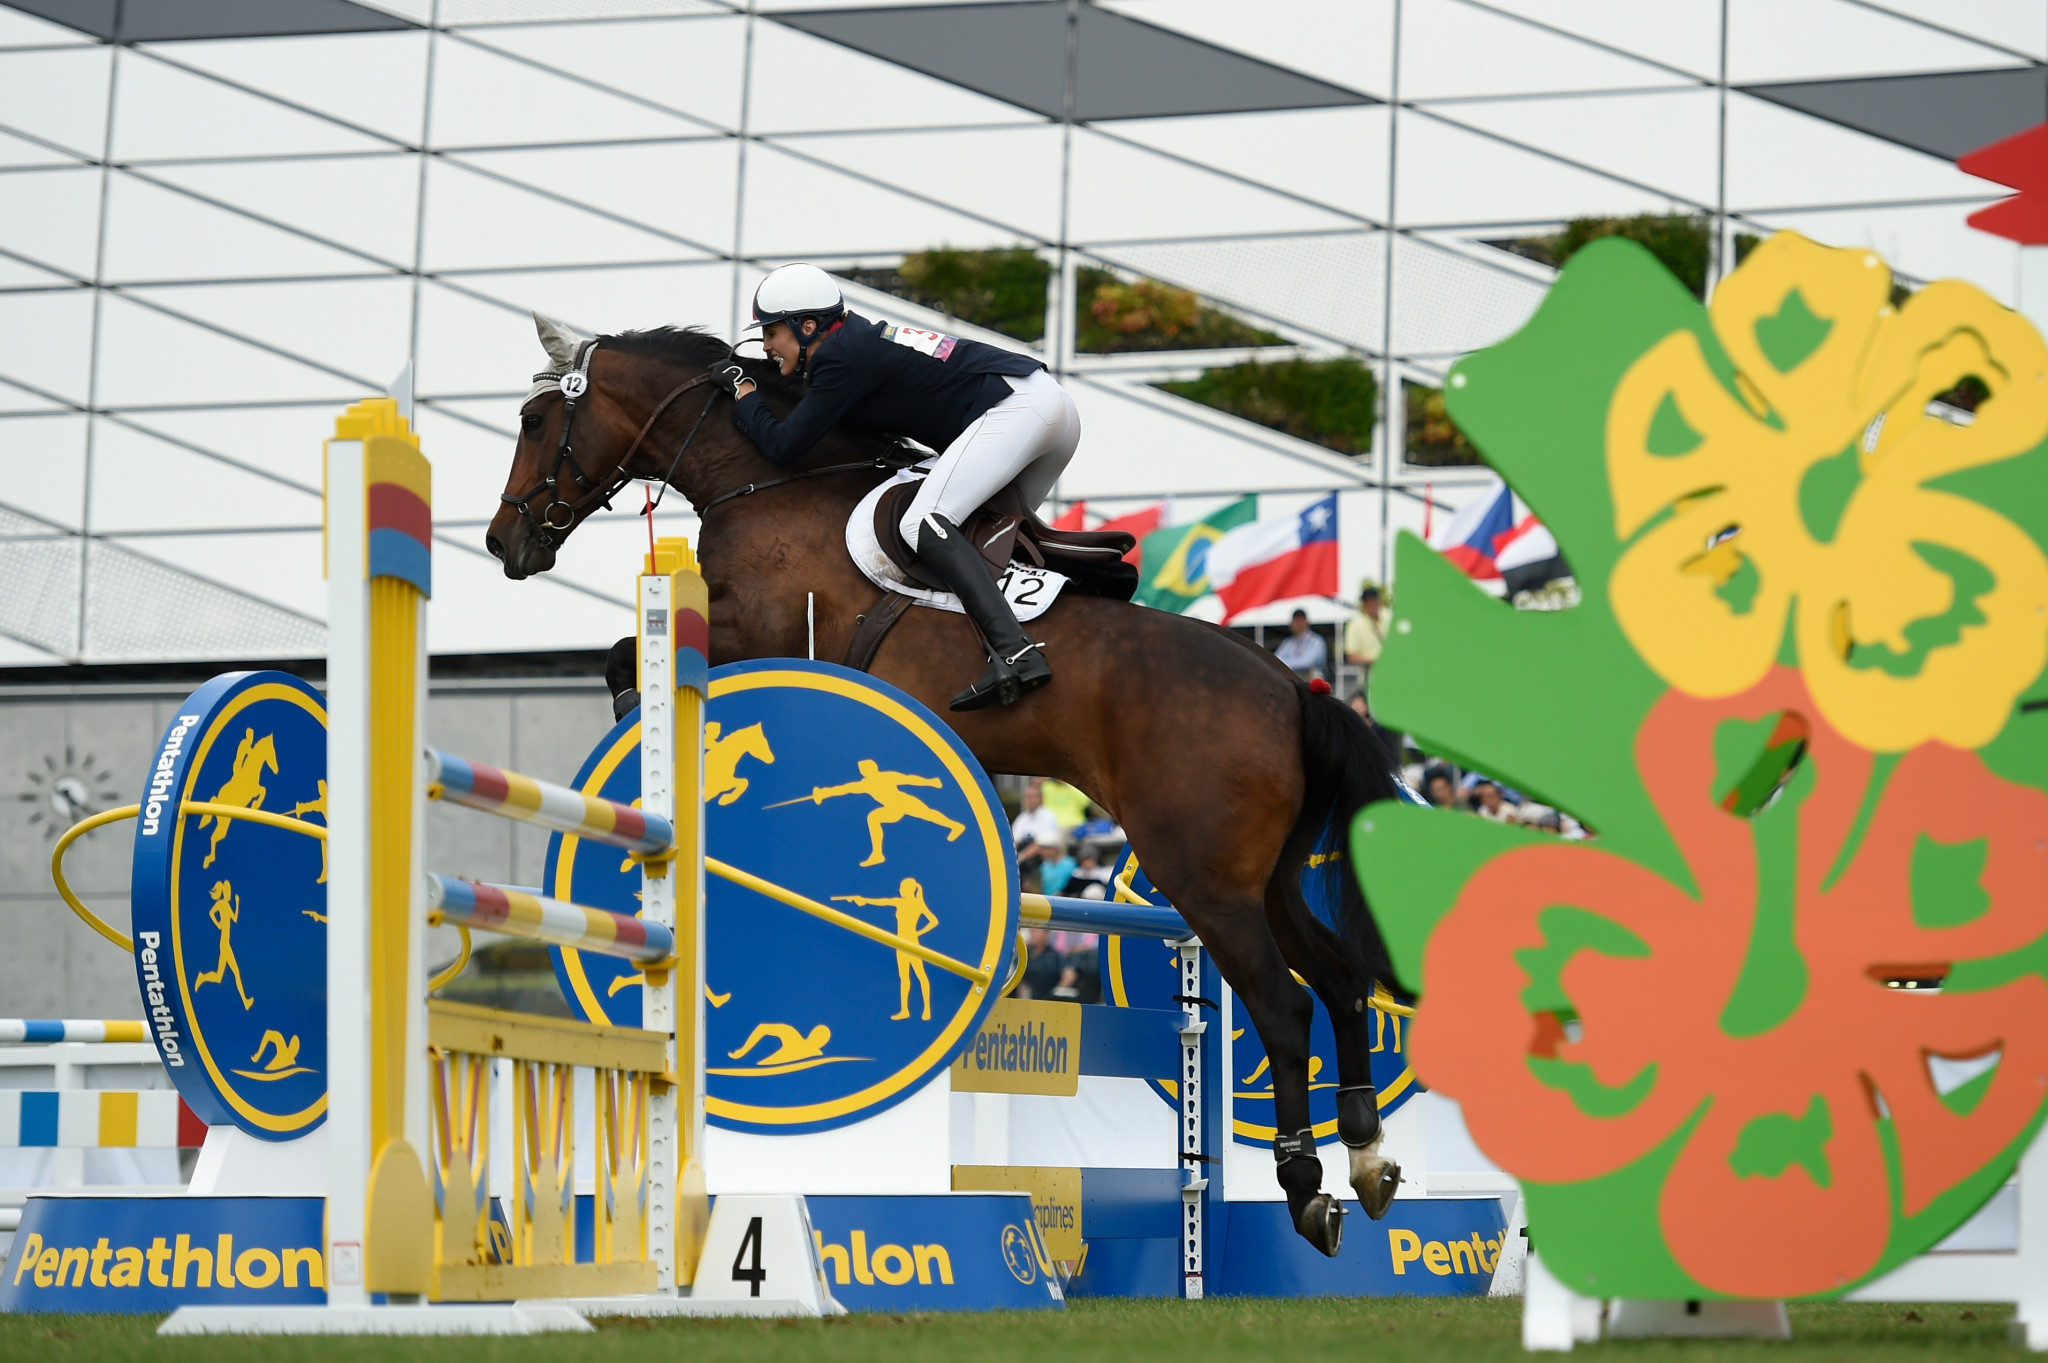 This year's Pentathlon World Cup Final has been moved to Hungary ©Getty Images